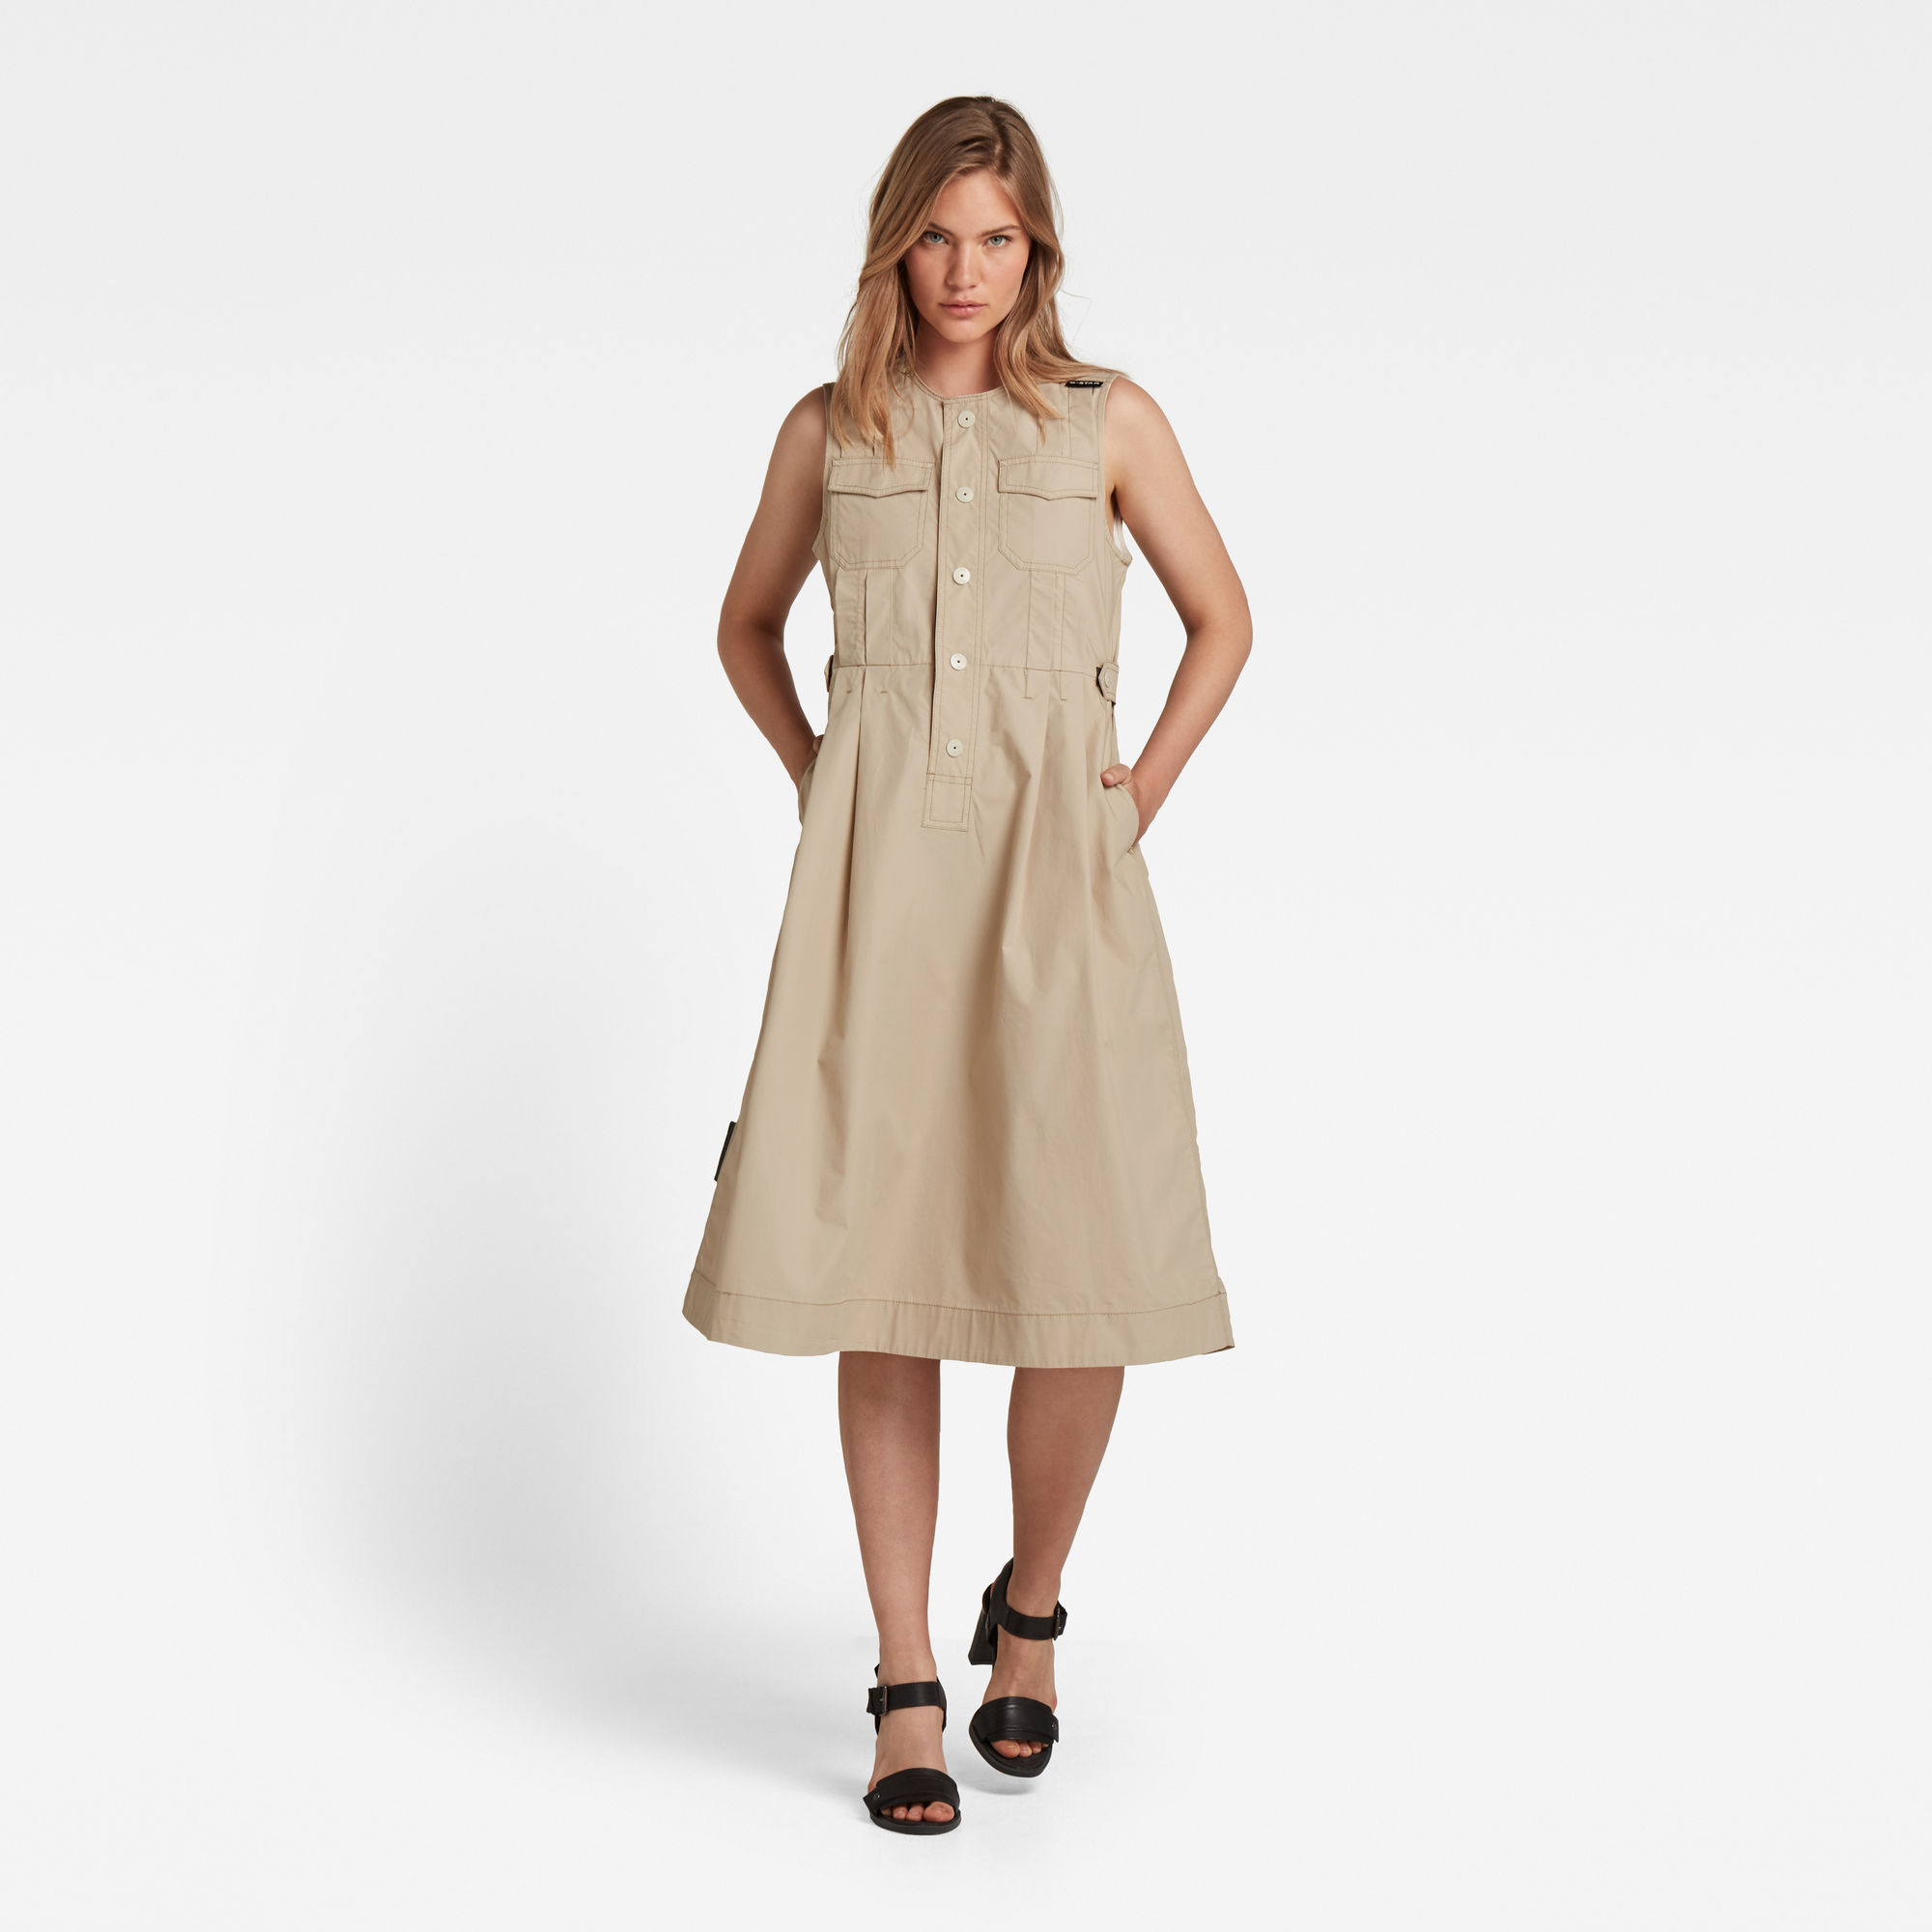 G-Star RAW Dames Jurk Fit And Flare Beige